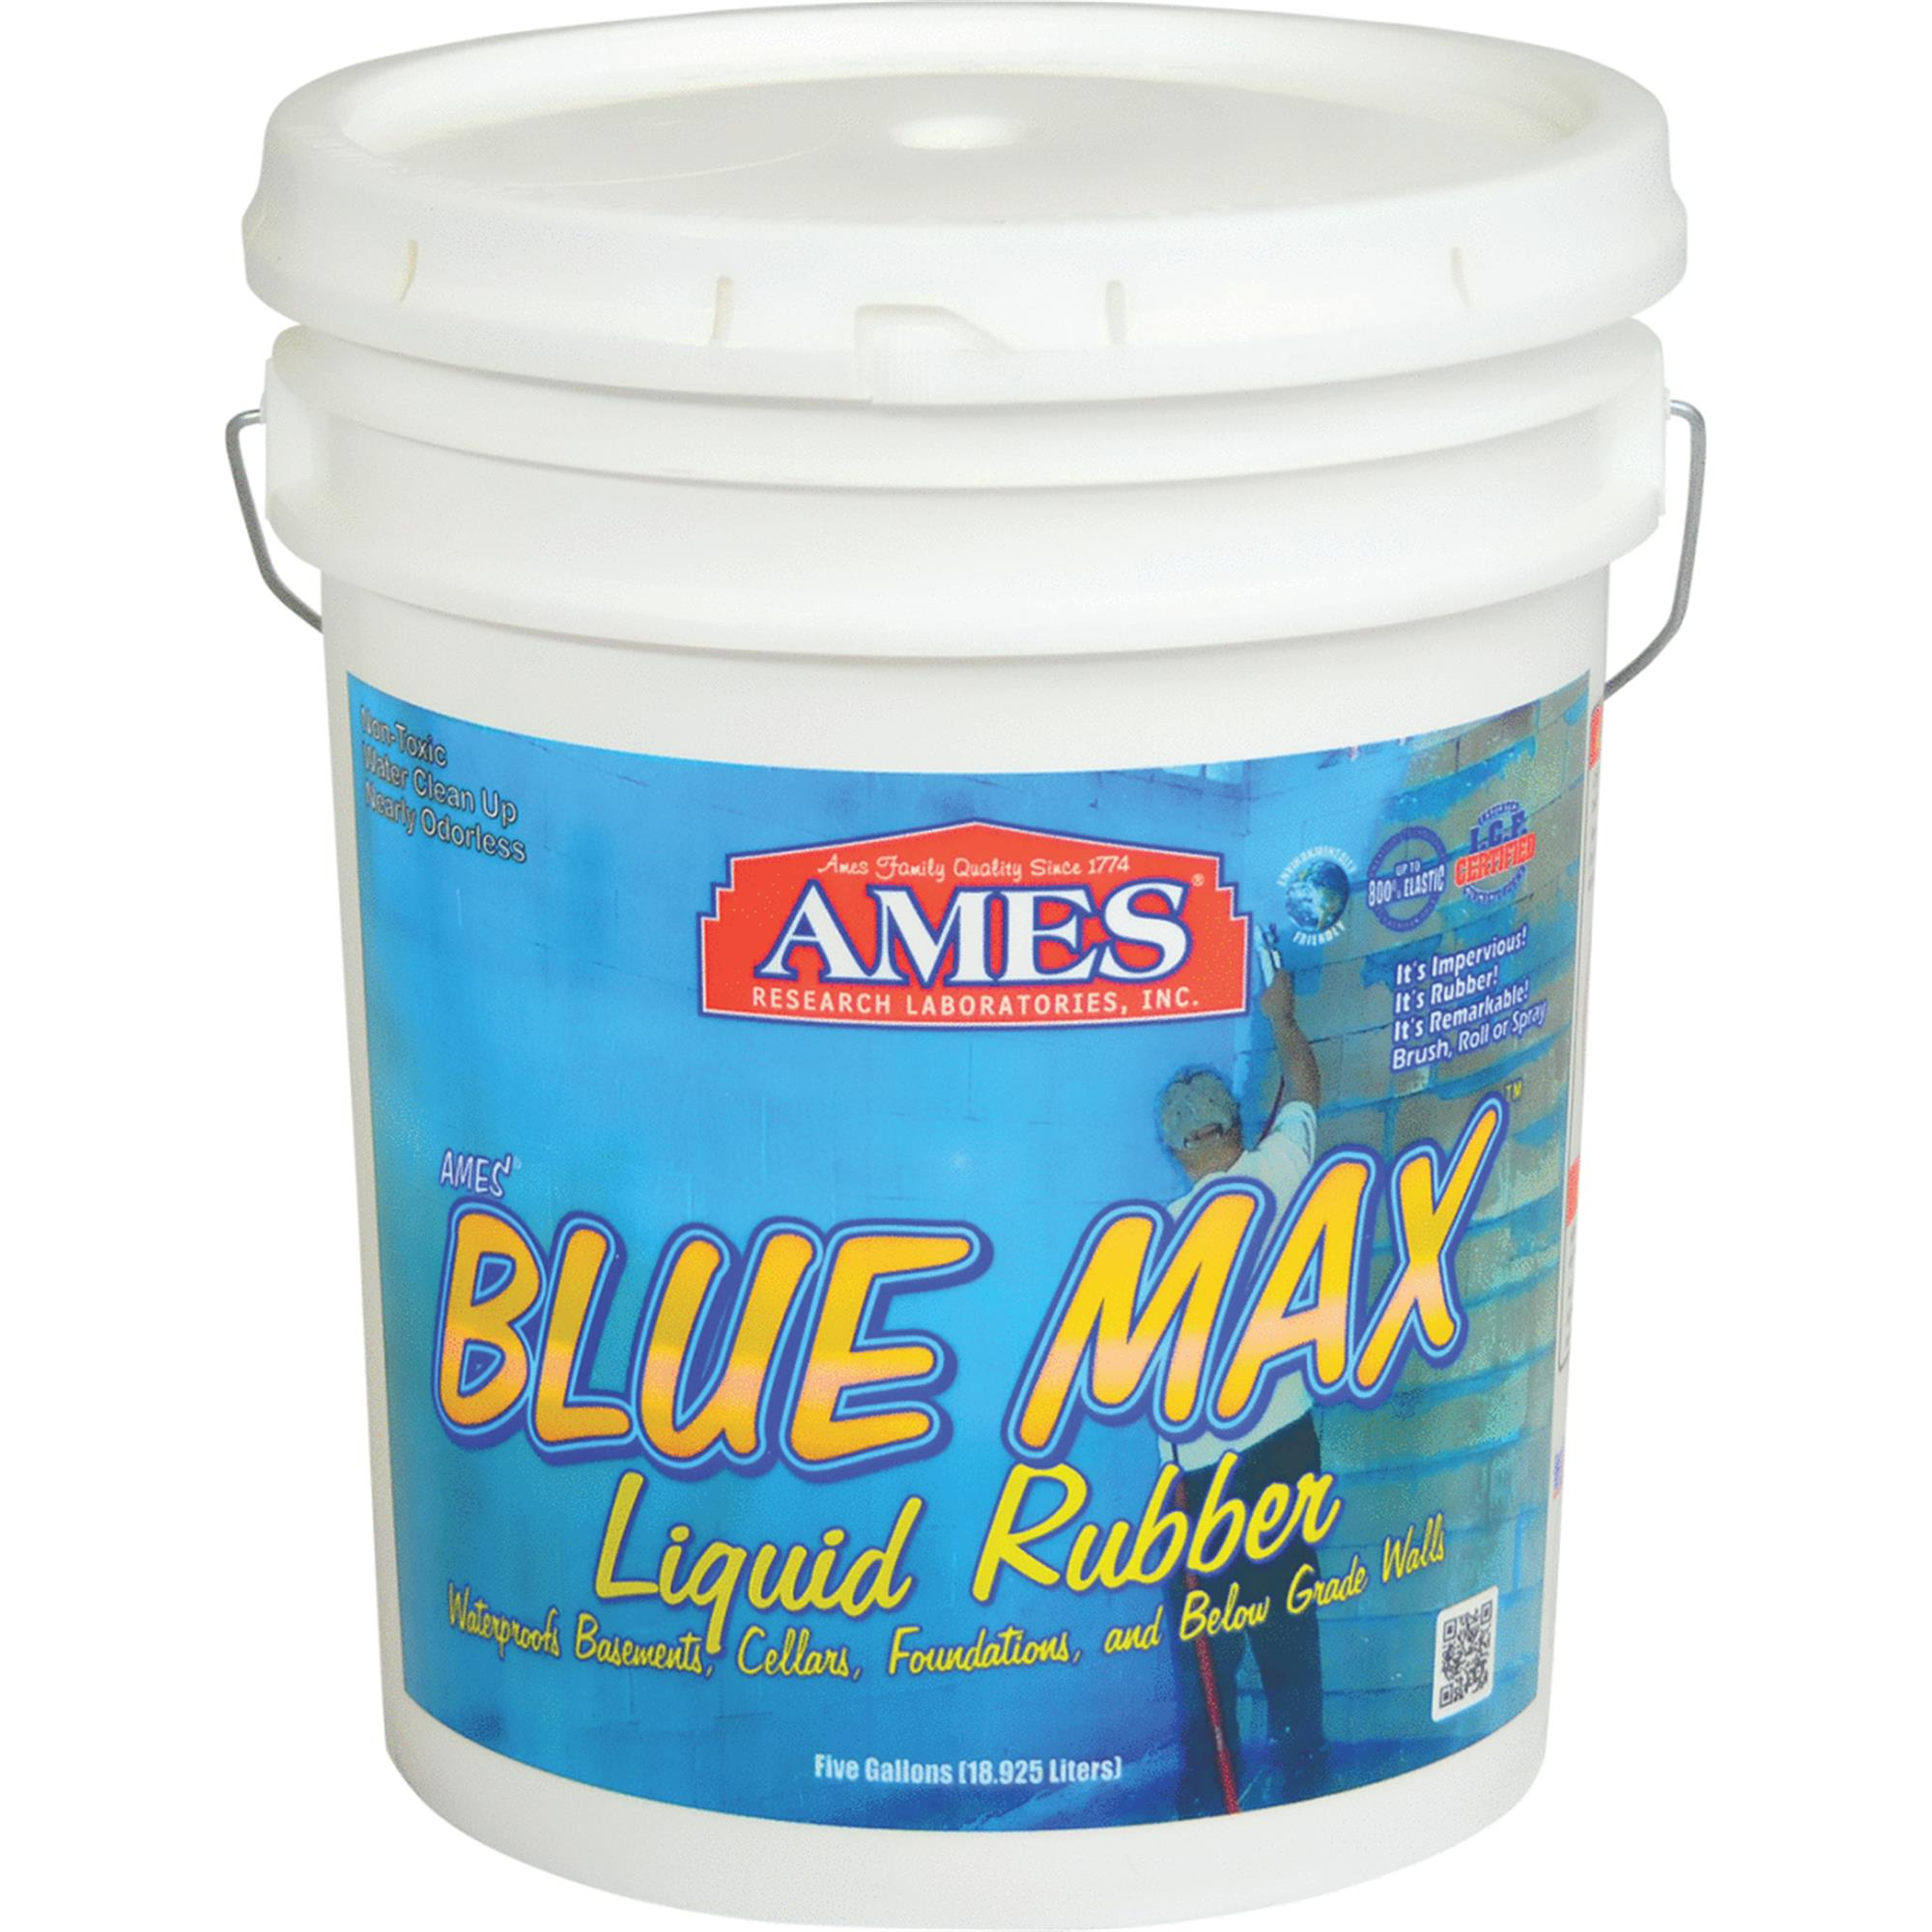 Ames Blue Max Liquid Rubber for Basements and Foundations 5 gallon by Ames Research Laboratories, Inc.